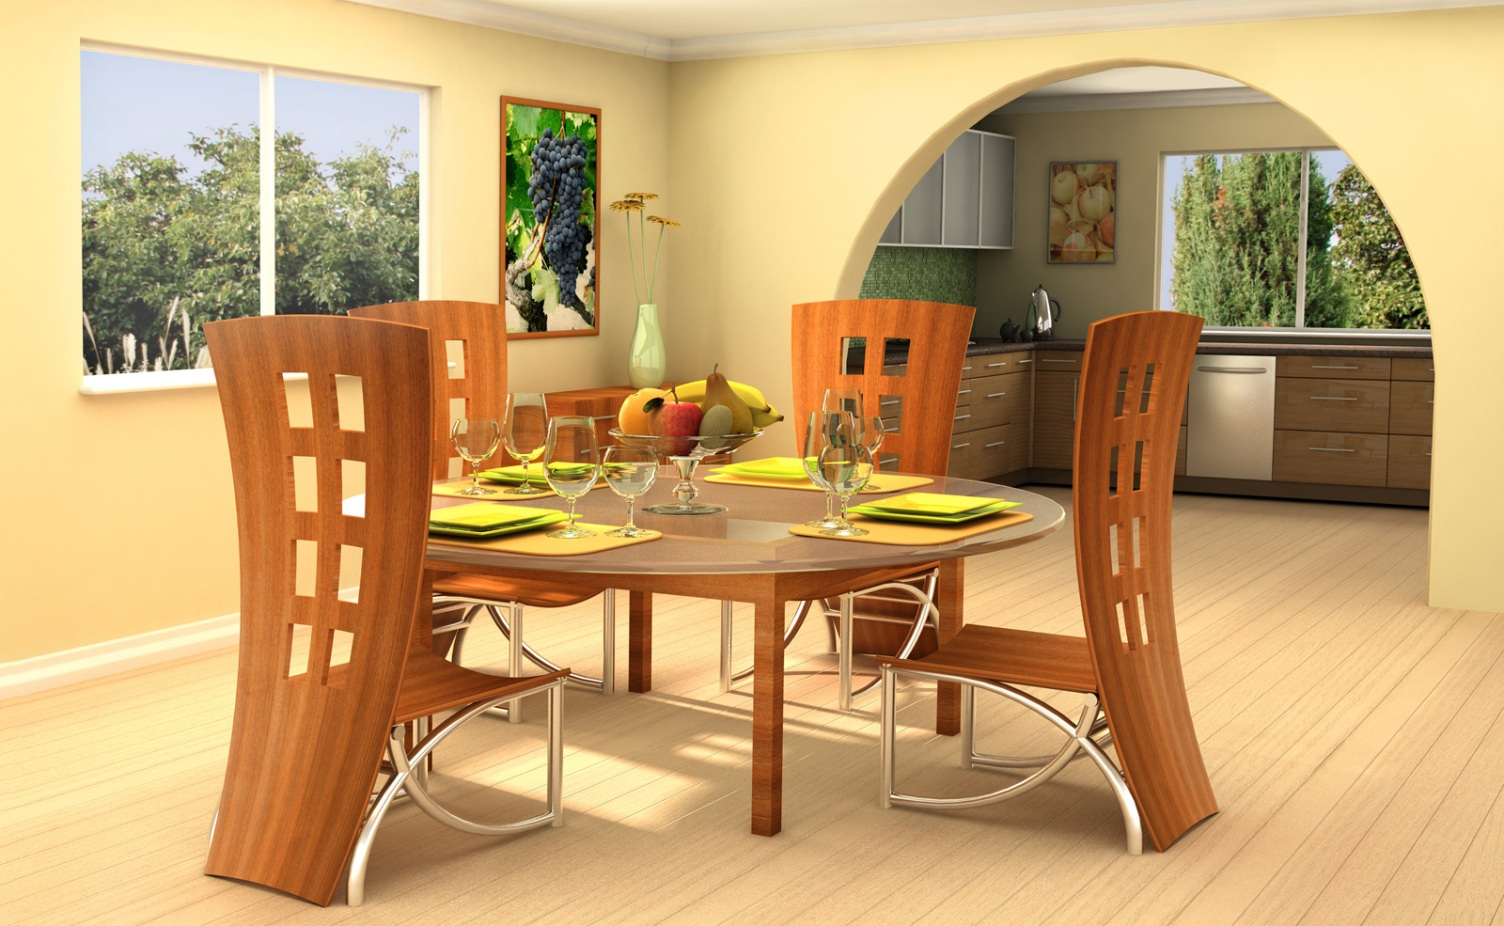 Kitchen Design With Dining Table